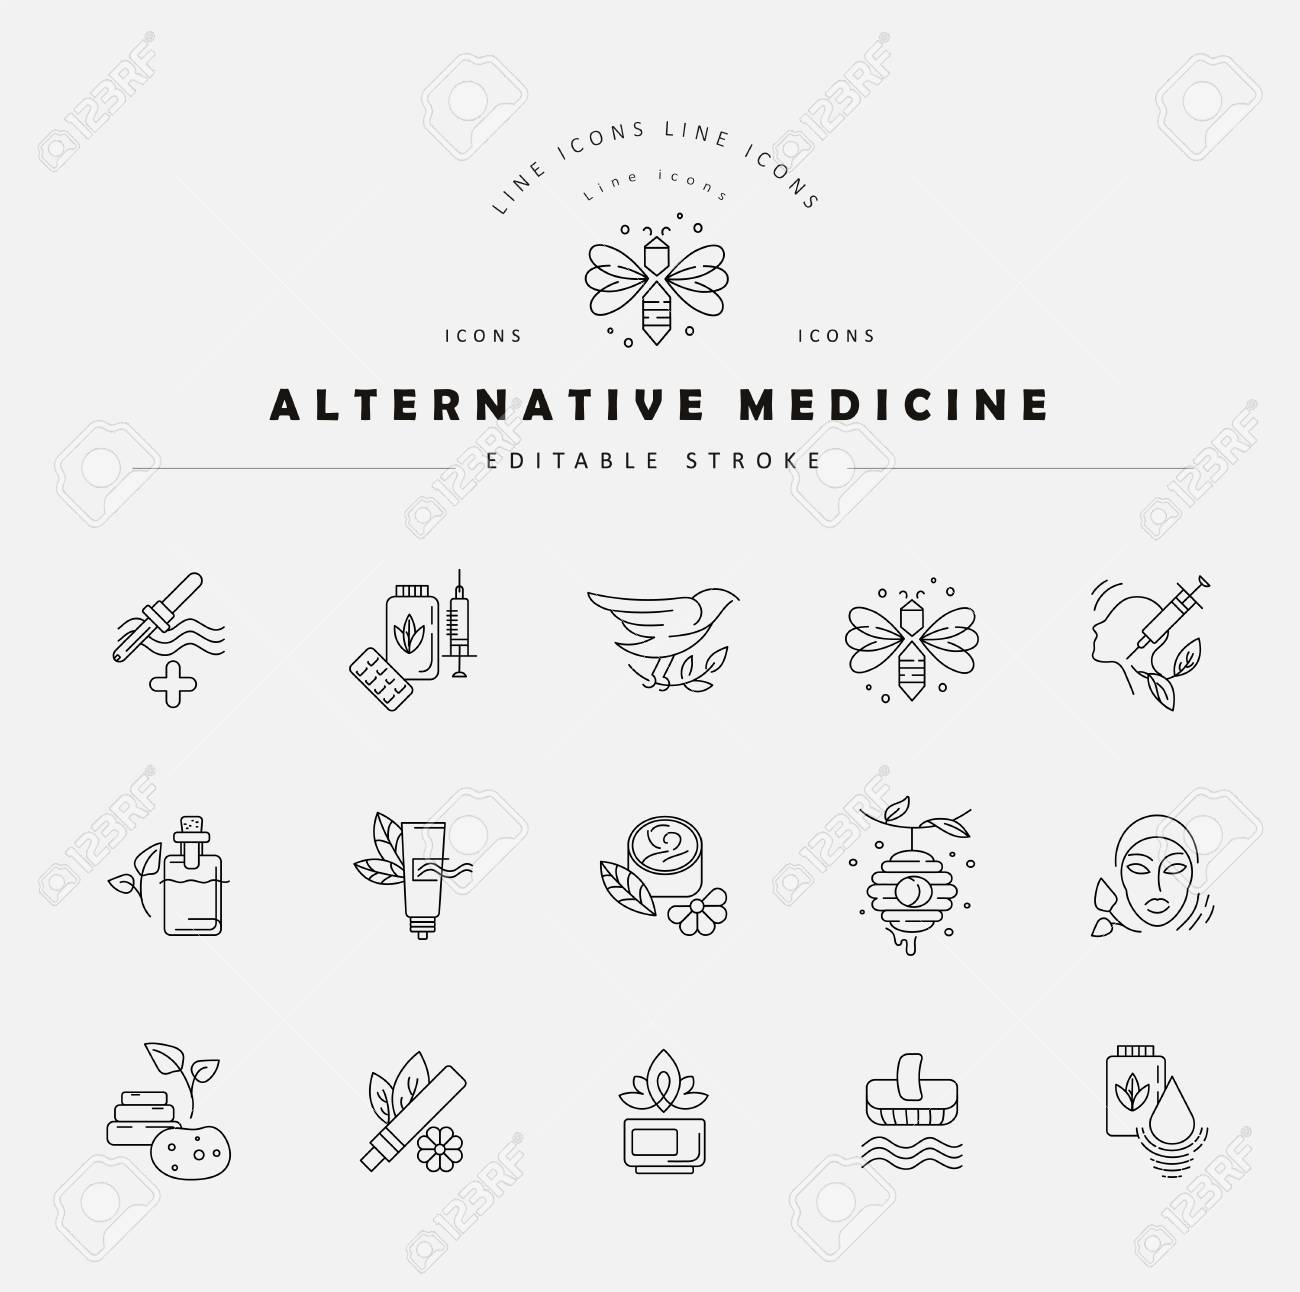 Vector icon and logo for alternative medicine. Editable outline stroke size. Line flat contour, thin and linear design. Simple icons. Concept illustration. Sign, symbol, element. - 113855456